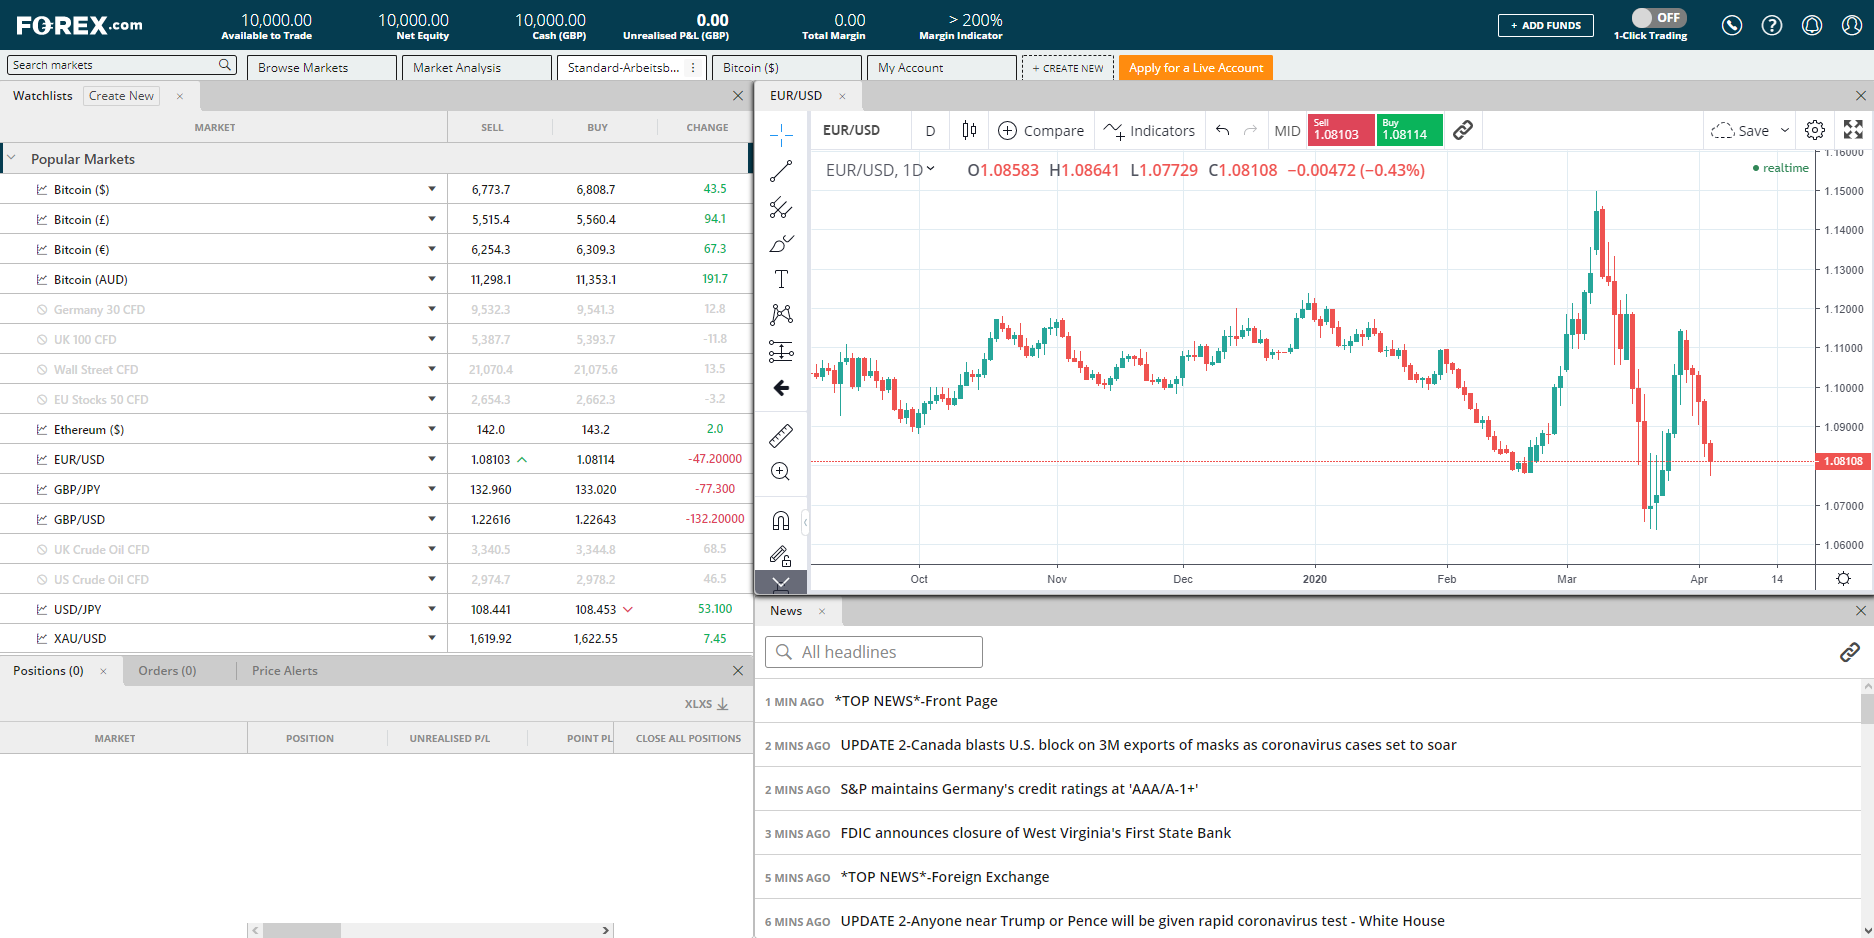 Screenshot of the Forex.com WebTrader Platform